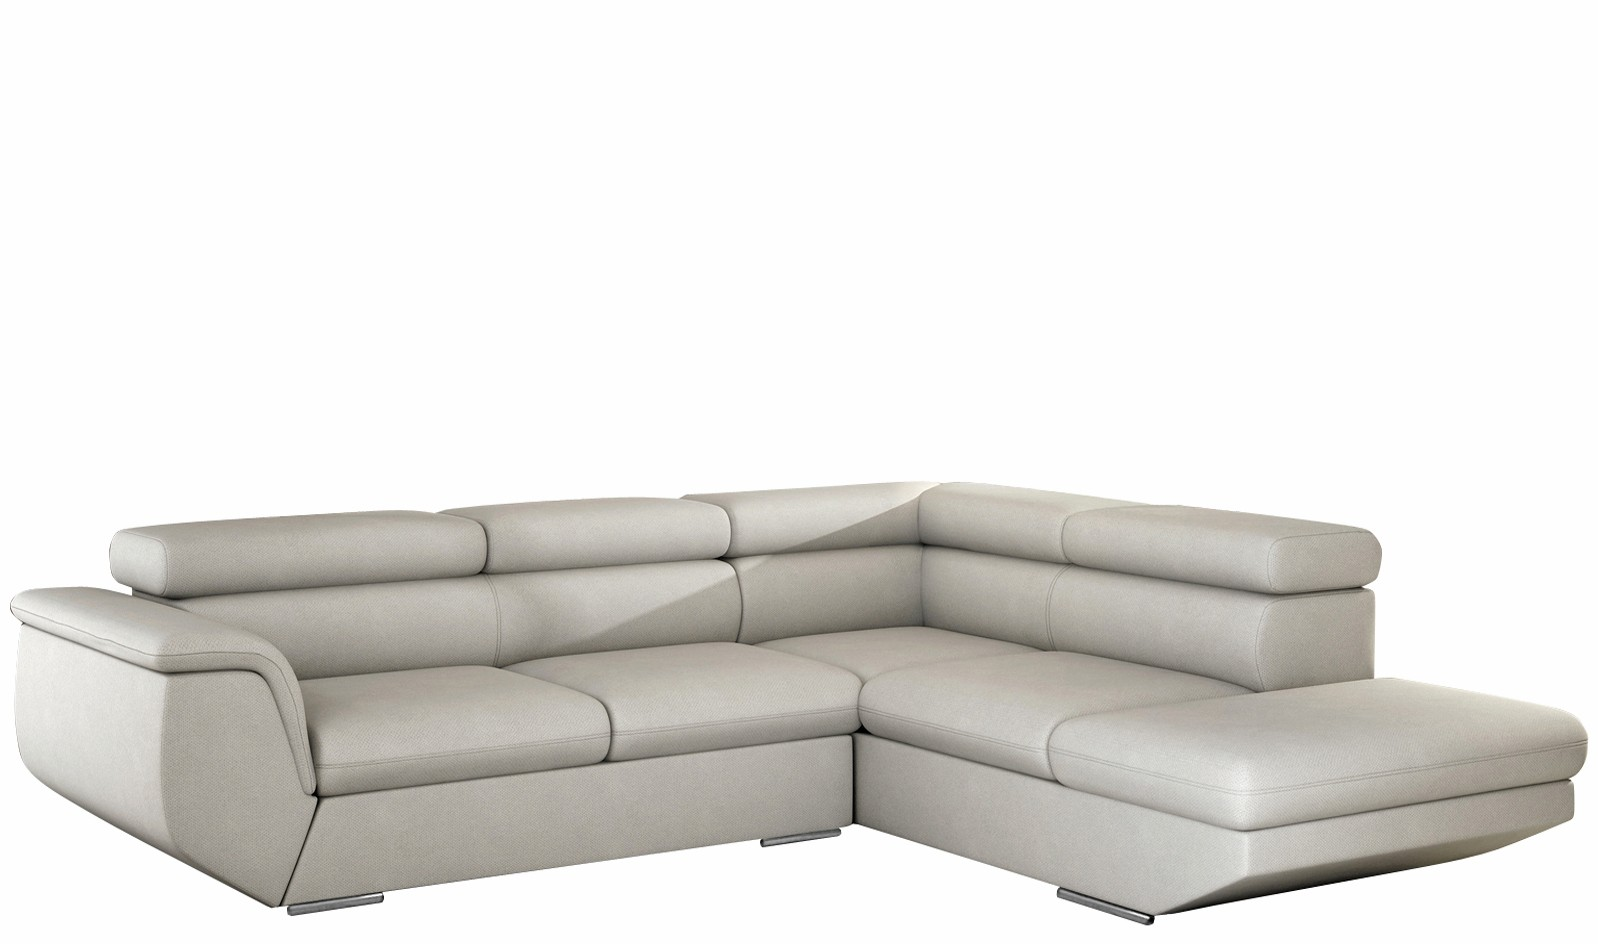 Corner Sofa Beds With Sleeping Function And A Container For